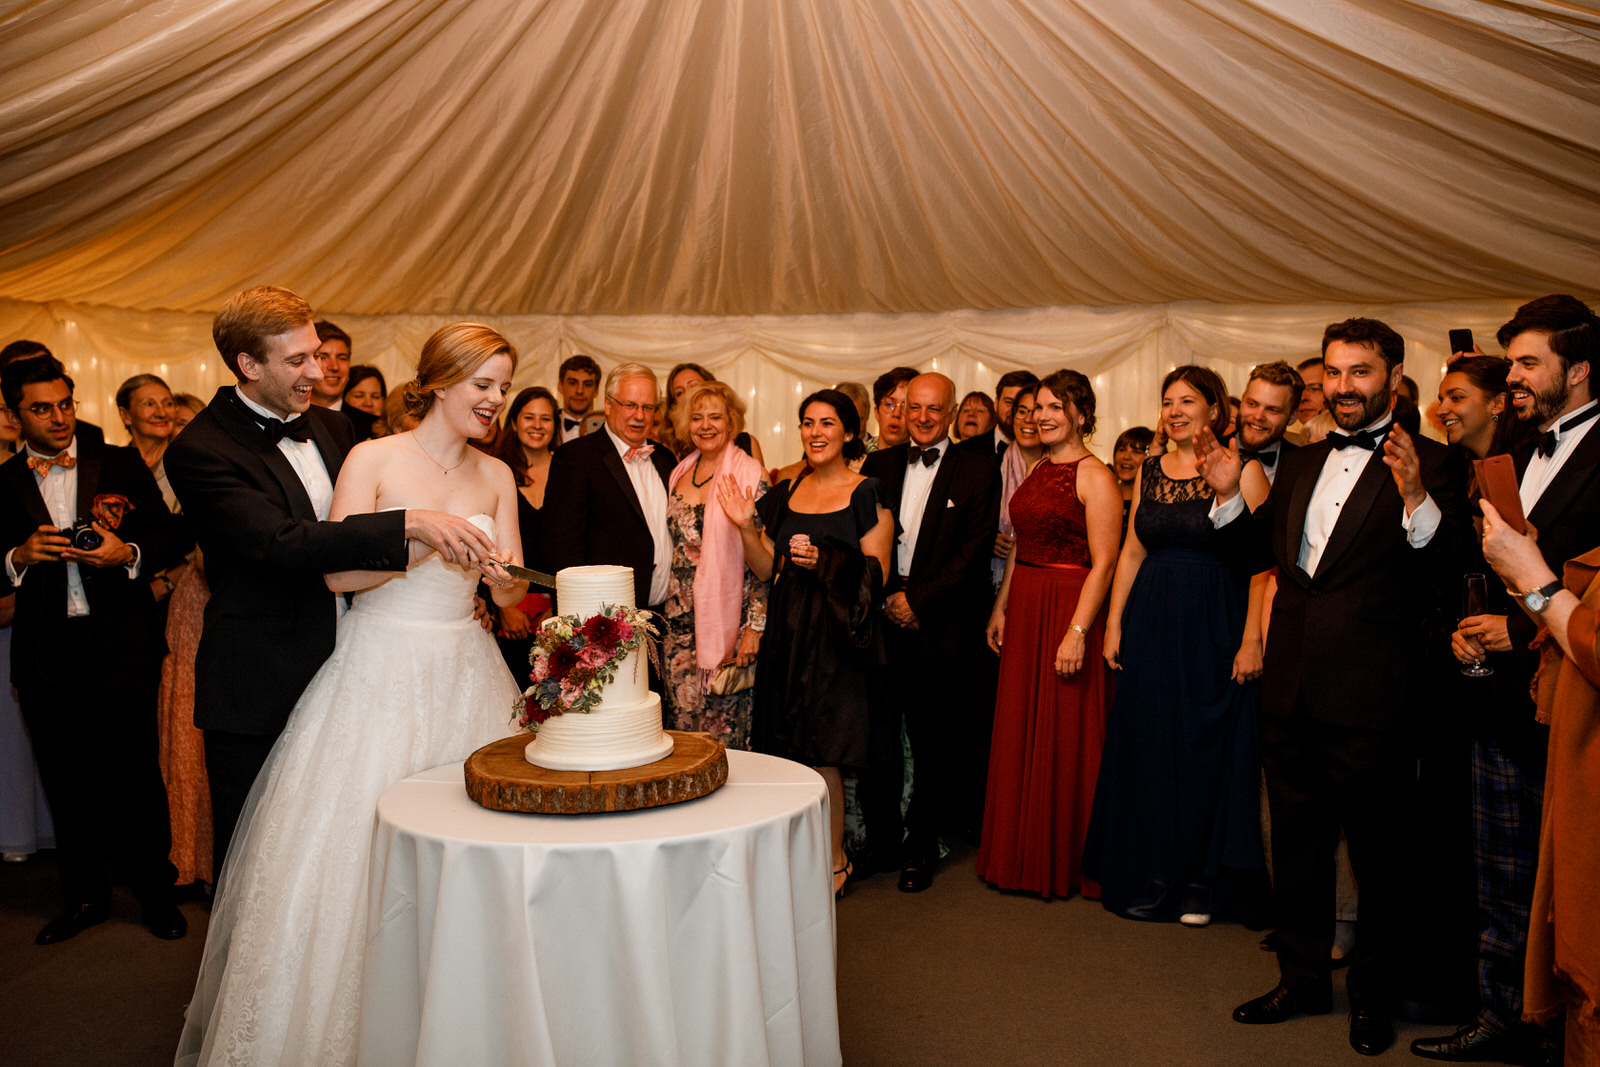 cake cutting at wedding in old luxters barn